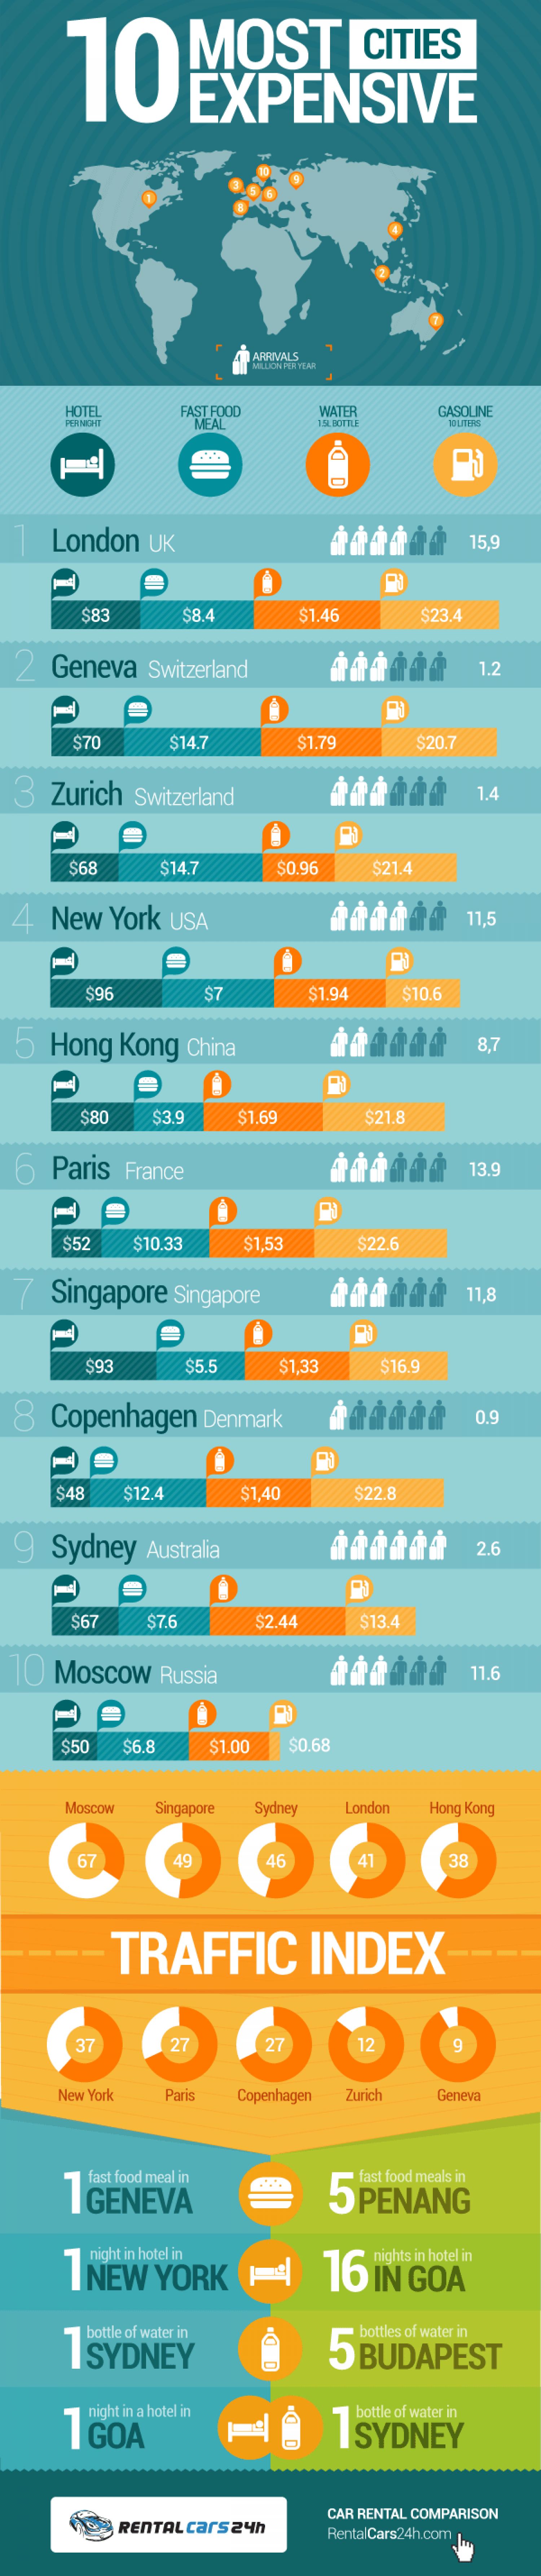 10 Most Expensive Cities Infographic